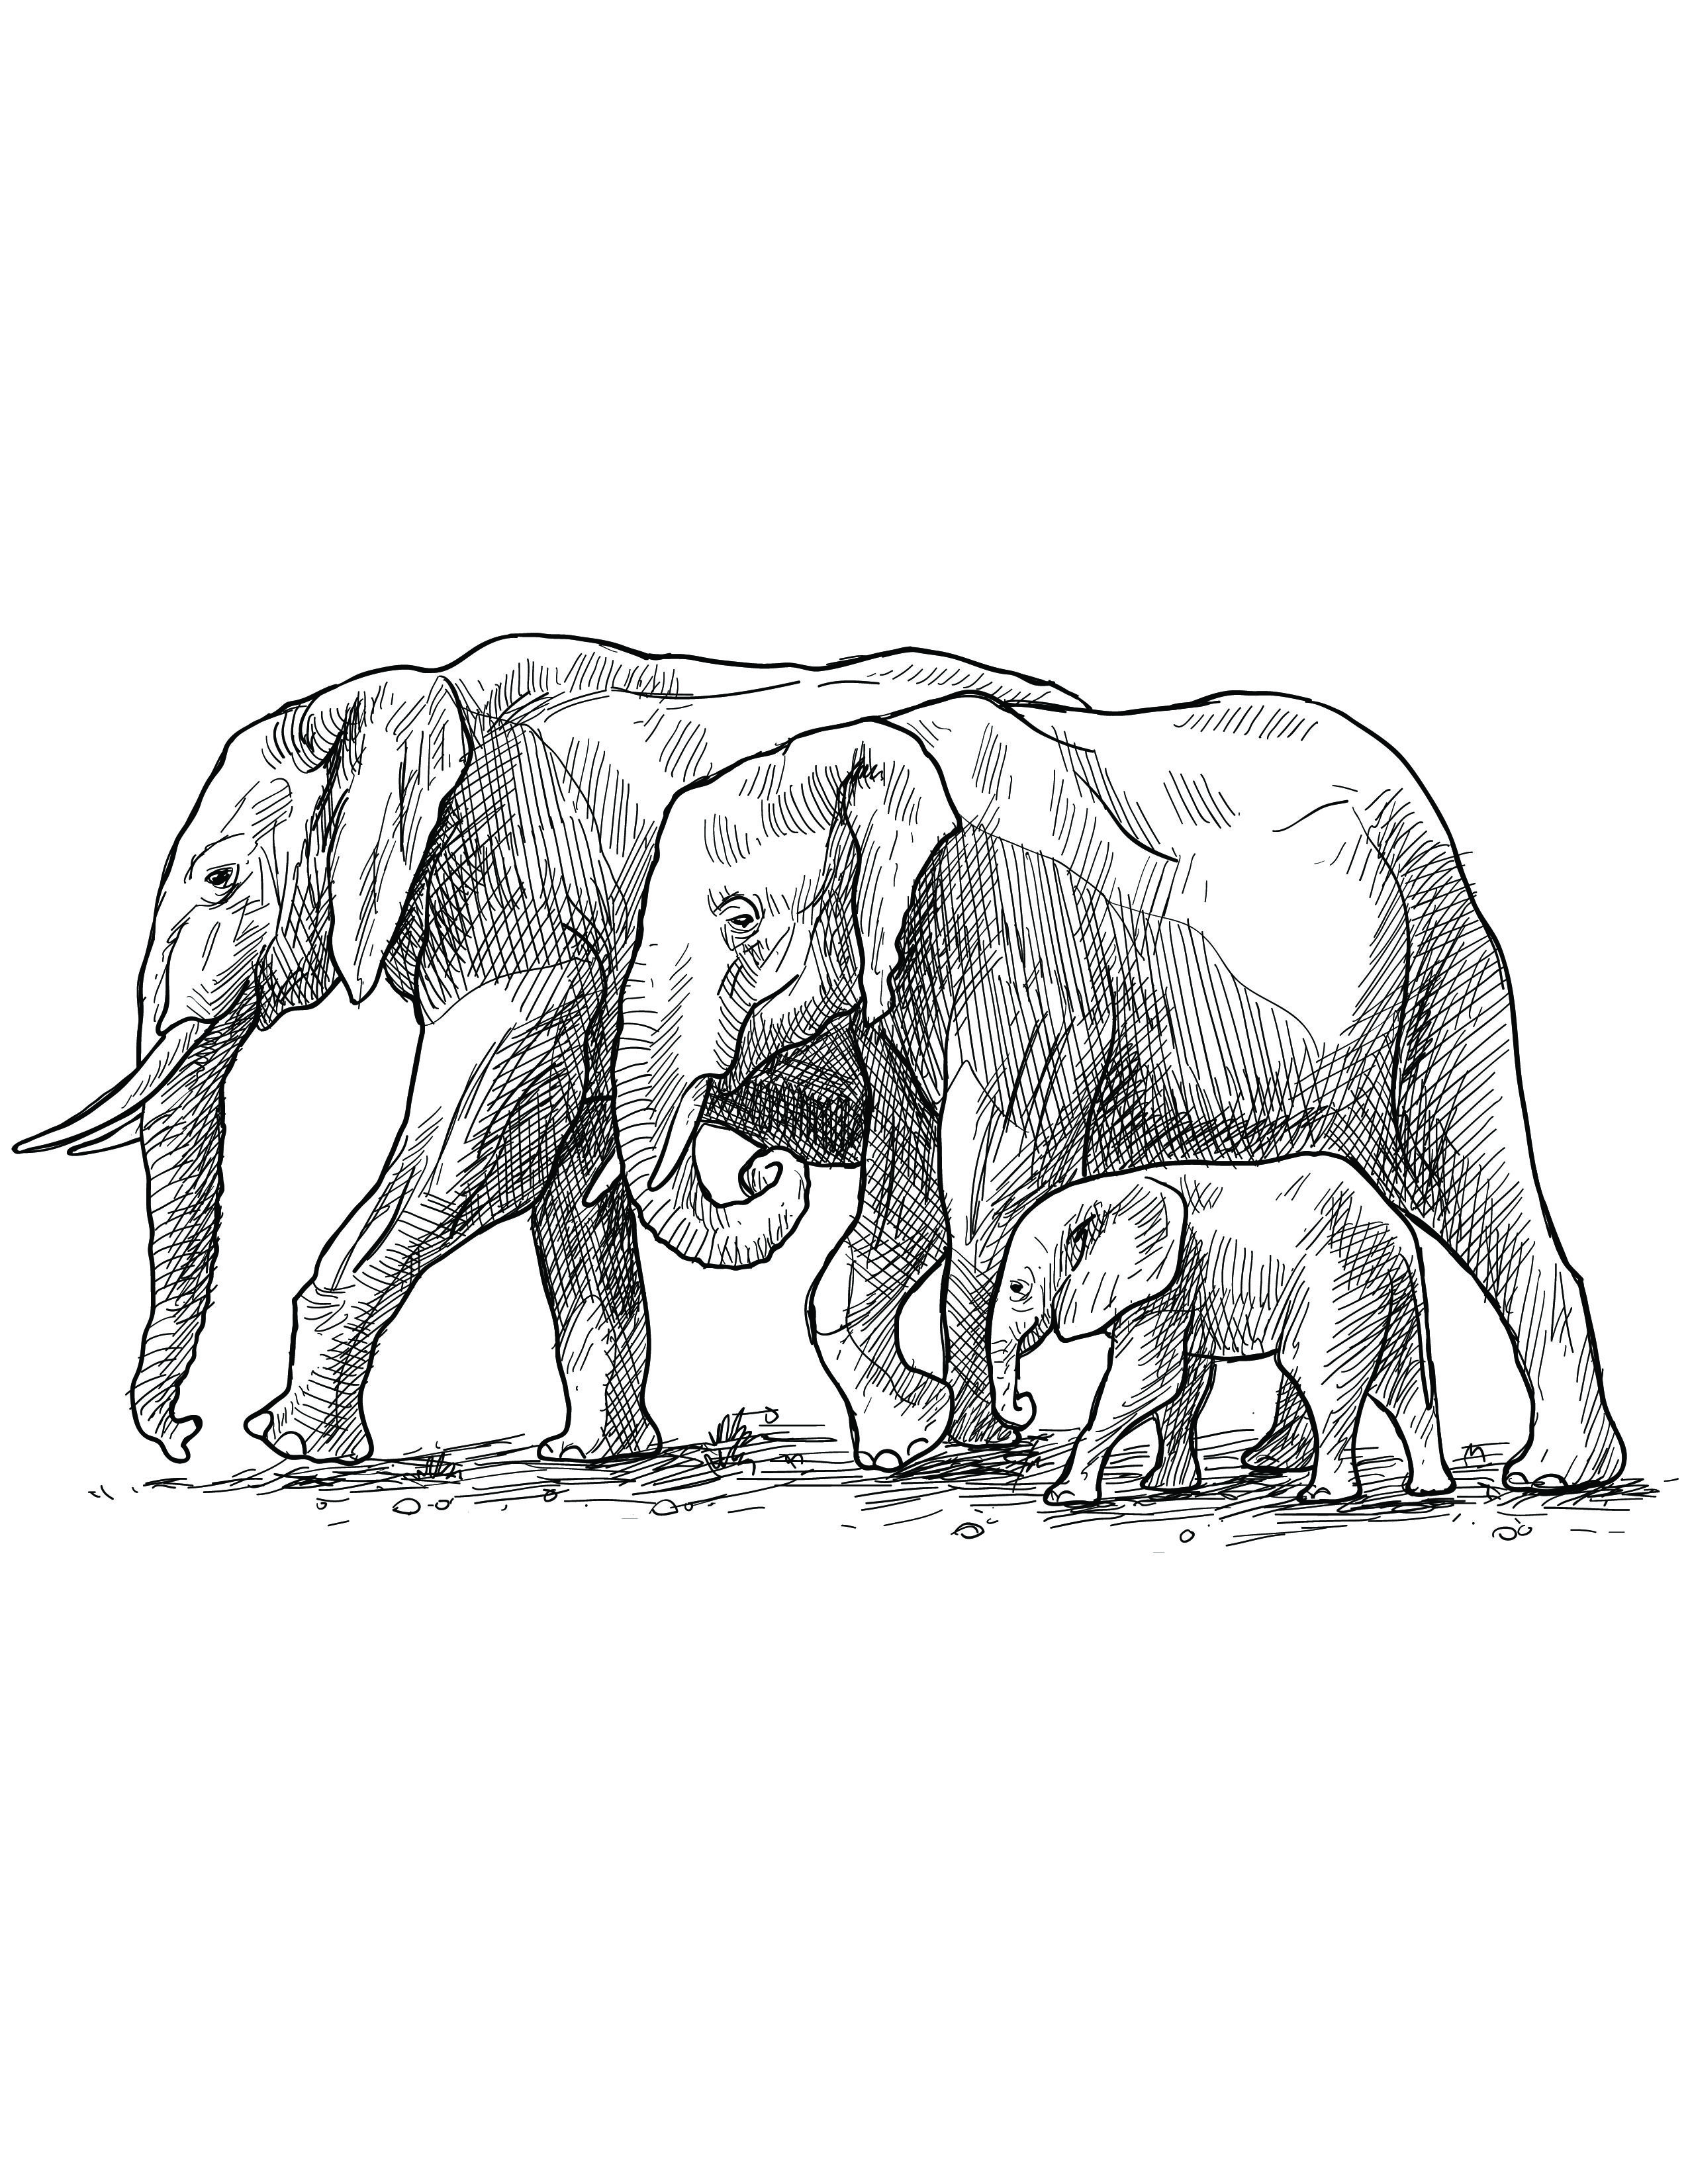 Coloriage Famille Elephant.Coloriage Grayscale Gratuit Famille Elephant Elephants Adult